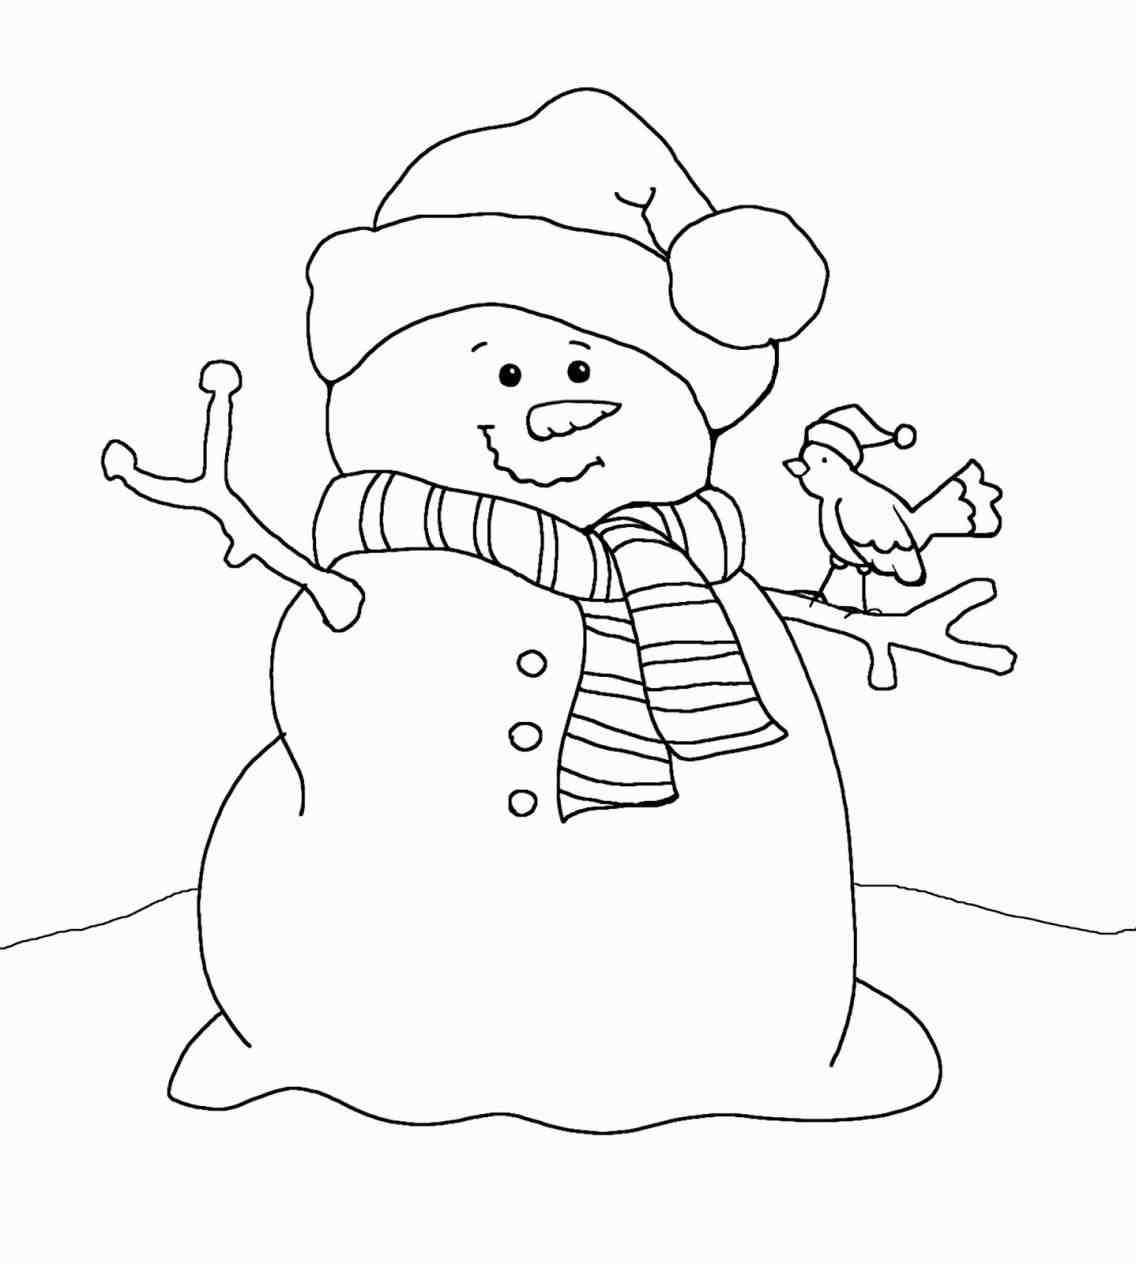 snowman printable coloring pages worksheet